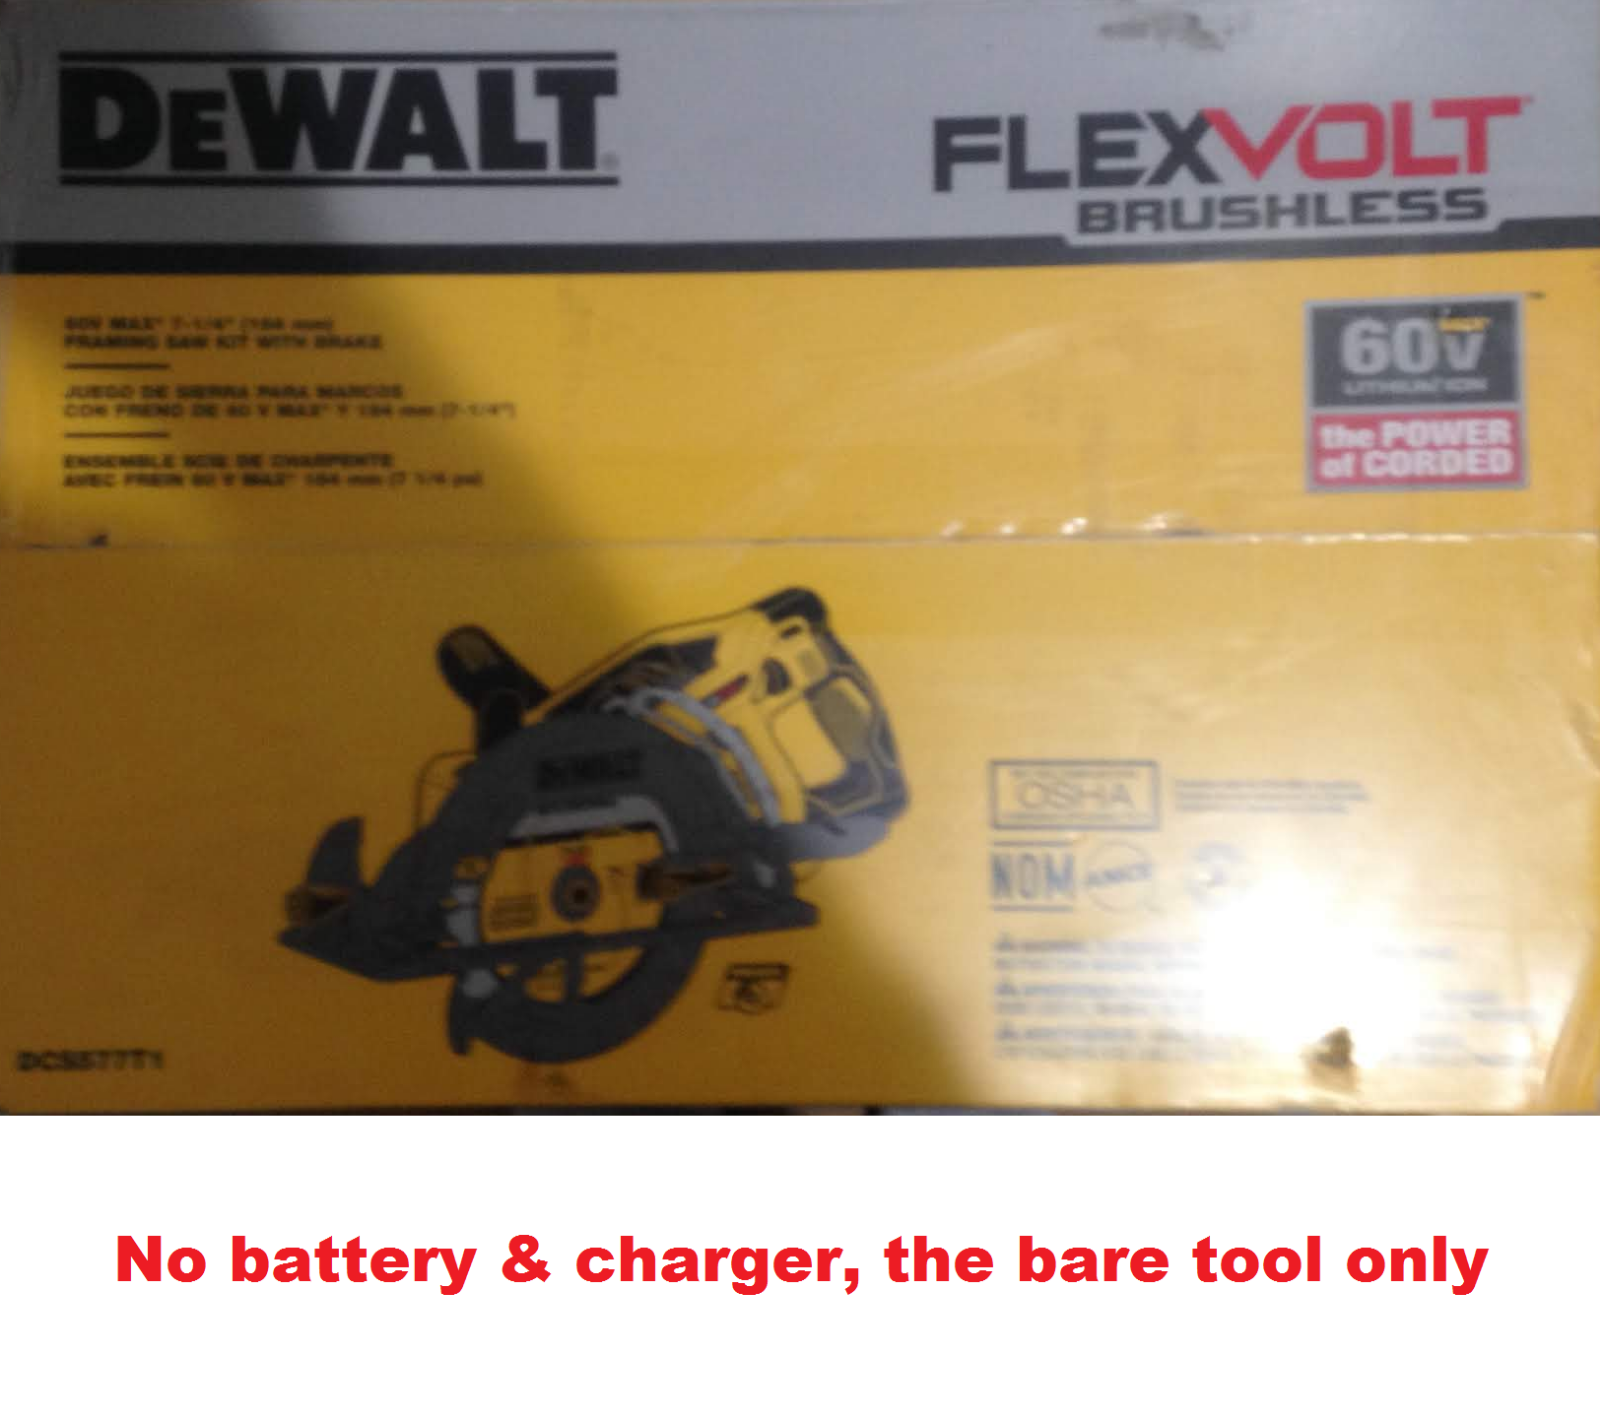 DEWALT DCS577B FLEXVOLT 60V MAX Brushless 7-1/4 in. Wormdrive Style Circular Saw